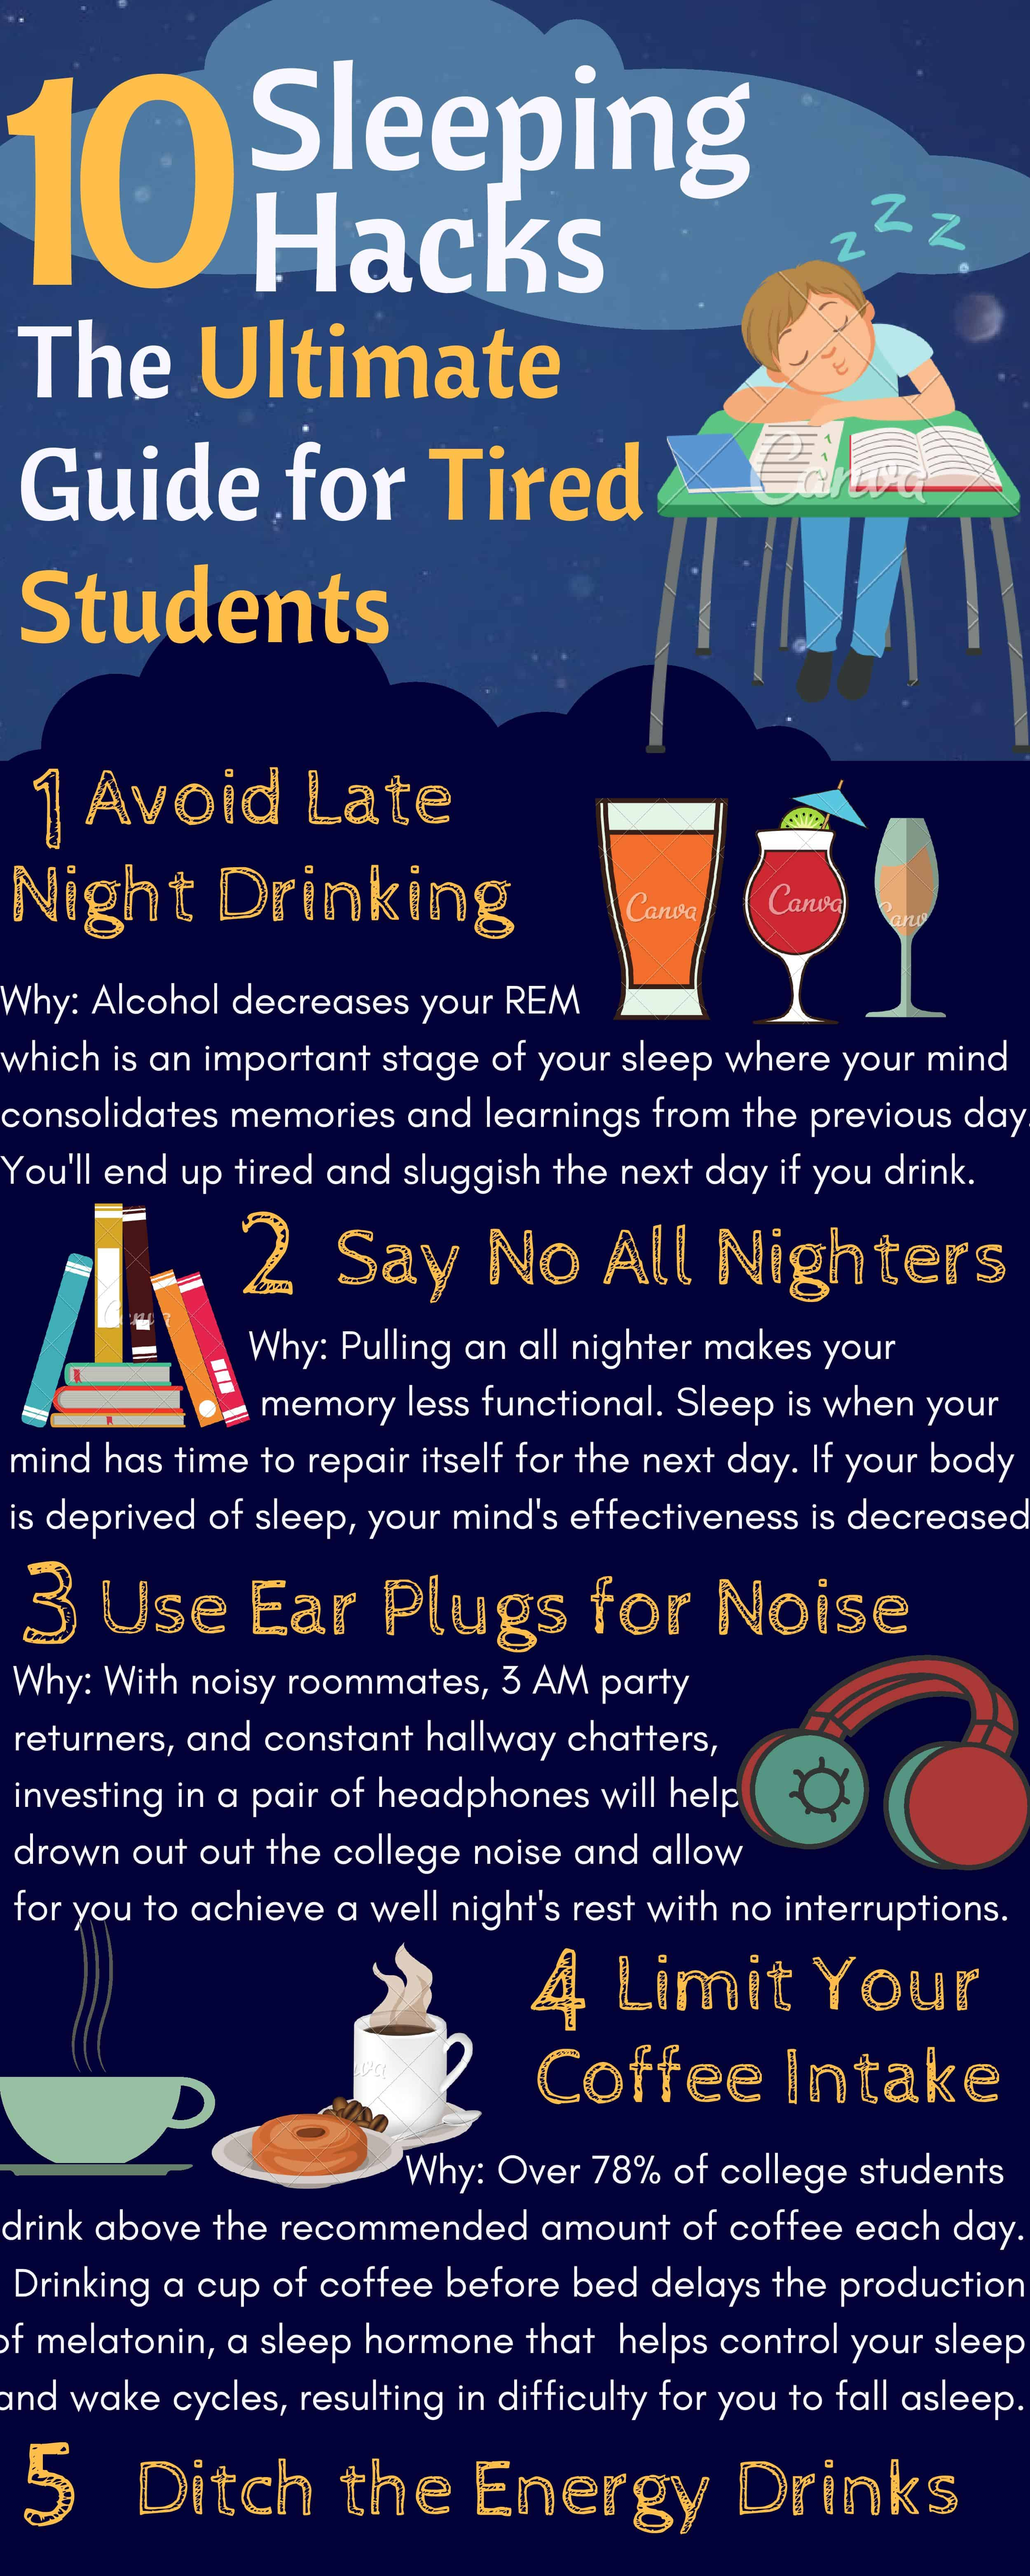 How to Sleep Better_ the Ultimate Guide for Tired sTUDENTS-page-001